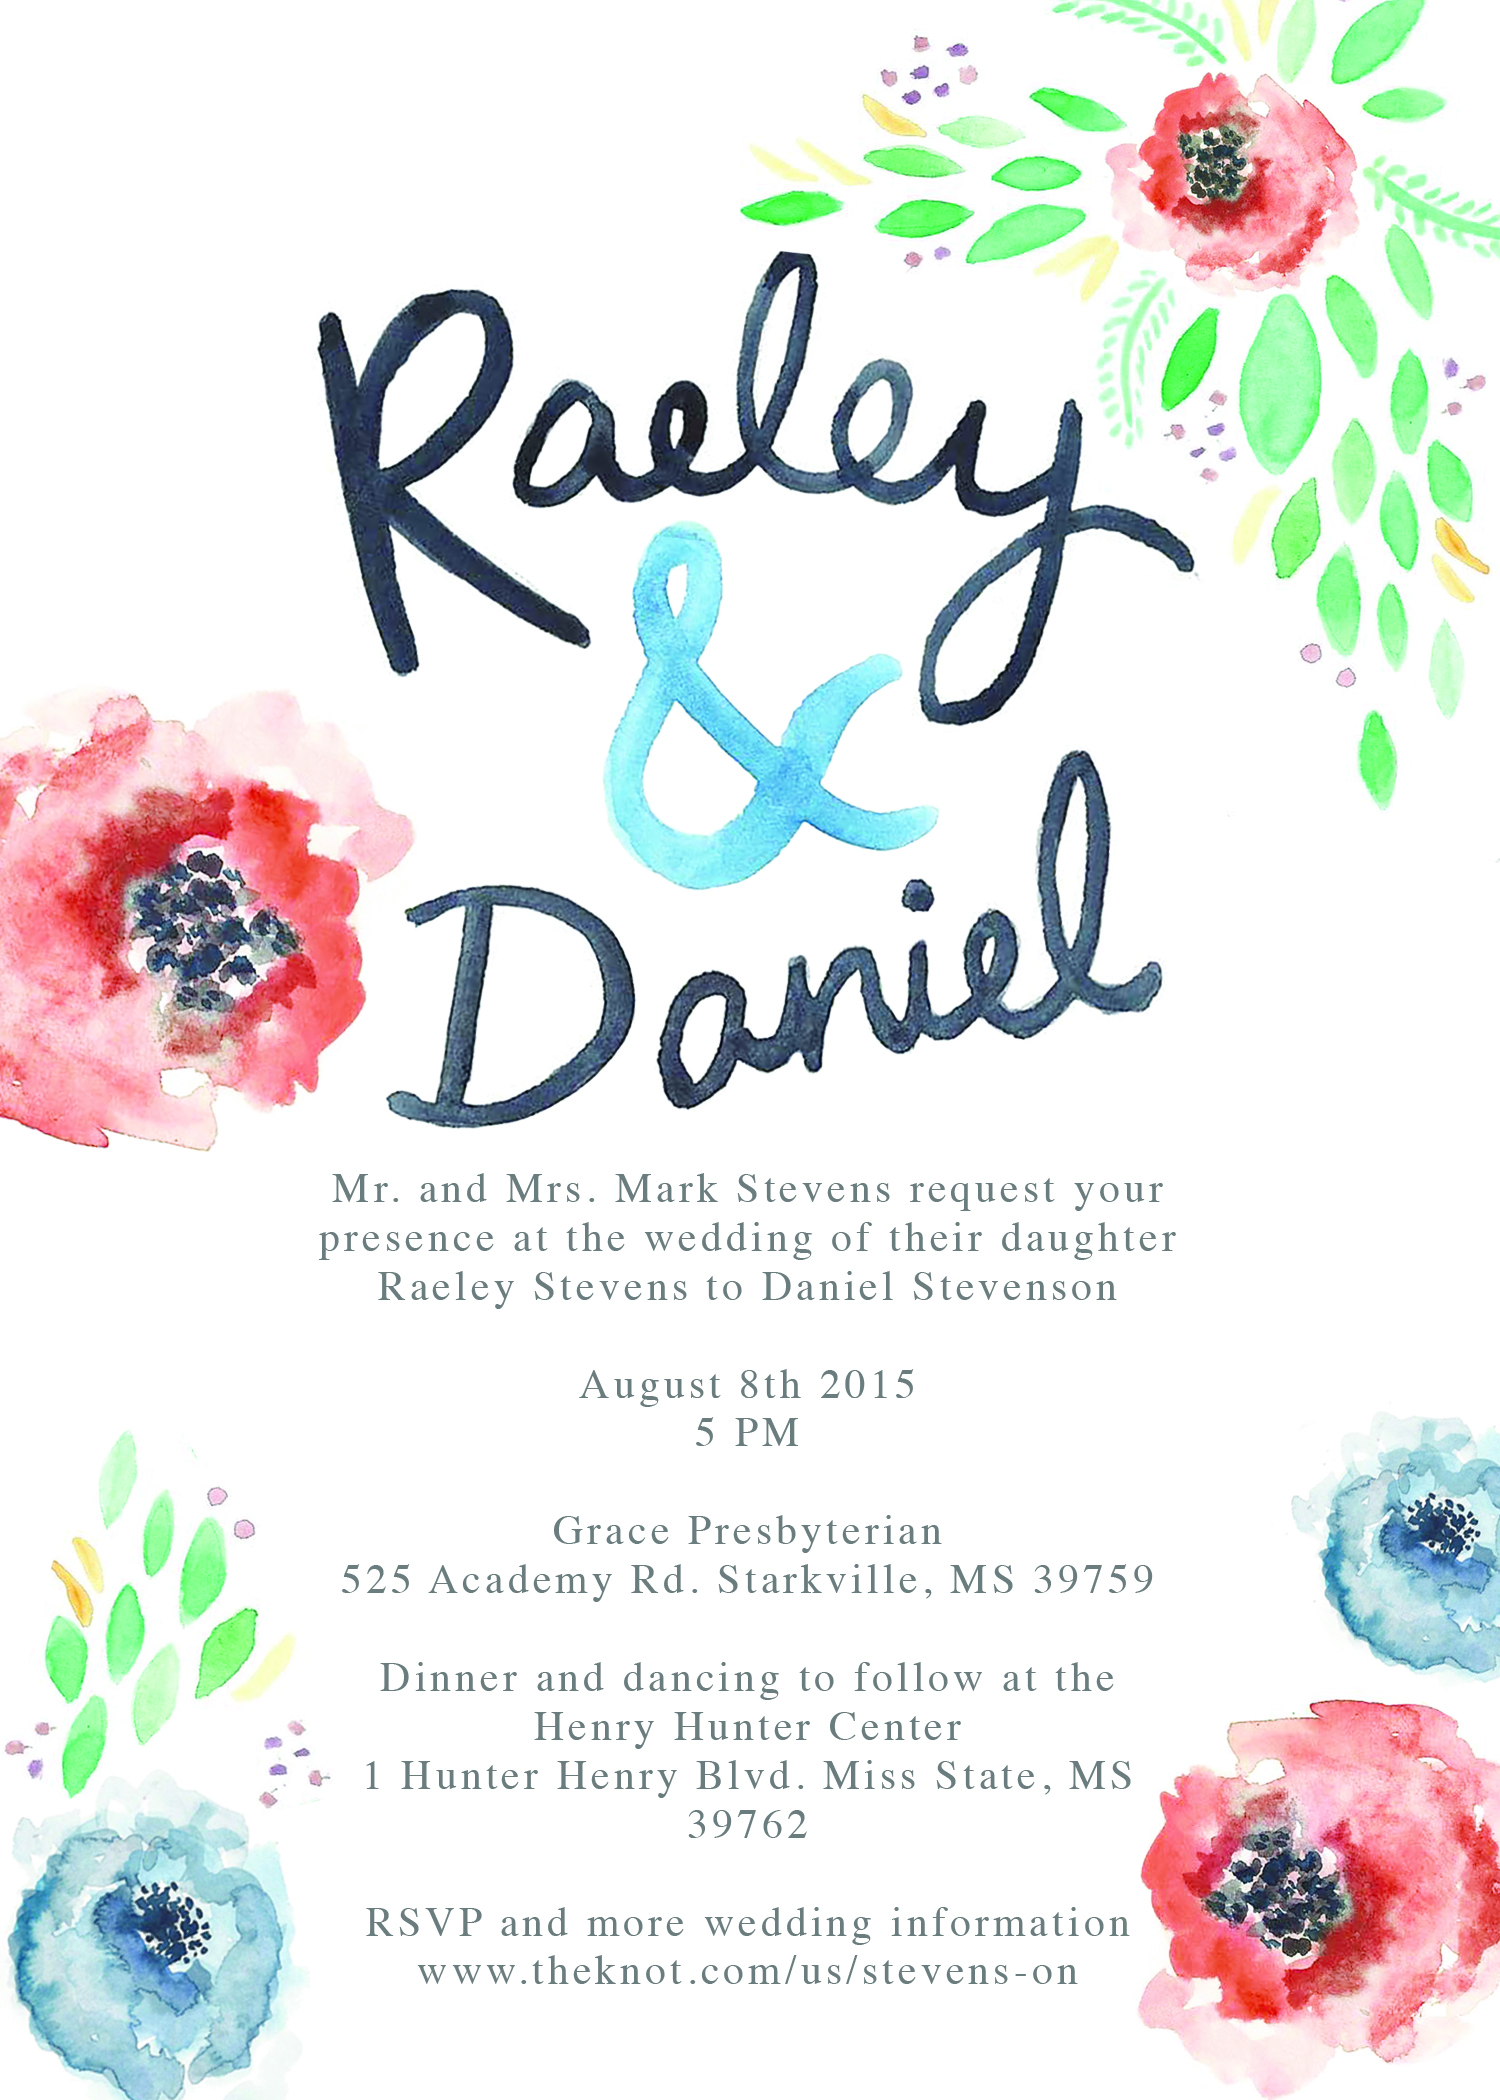 Many thanks to Maura for designing my wedding stationary! http://mauraworch.com